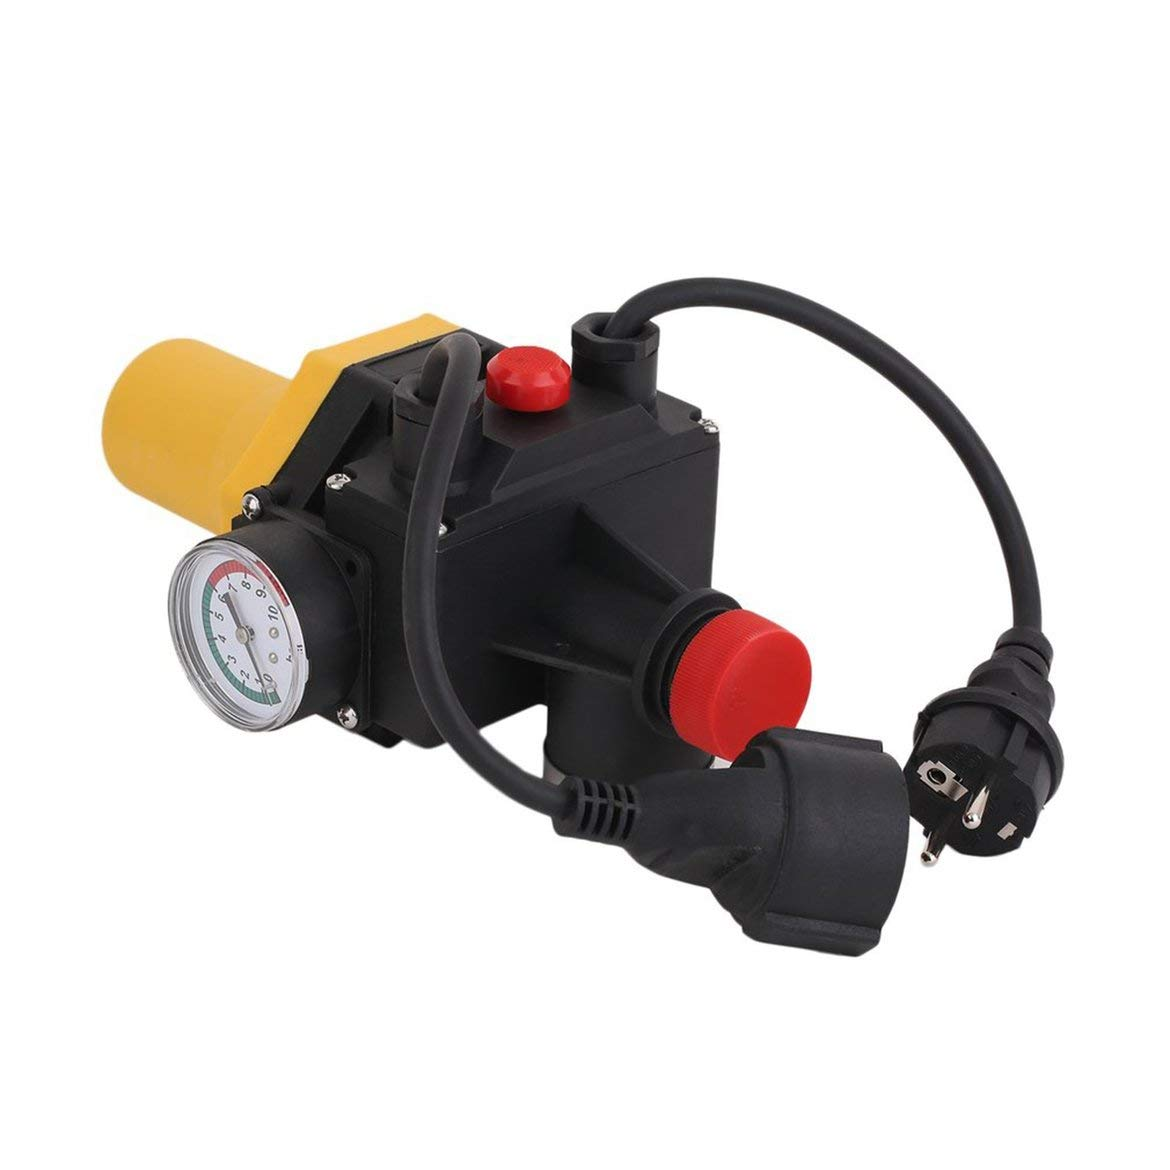 JohnJohnsen PC03.C Shortage Protective Water Pump Automatic Pressure Control Switch Electronic Switch with Pressure Gauge EU Plug Yellow /& Black